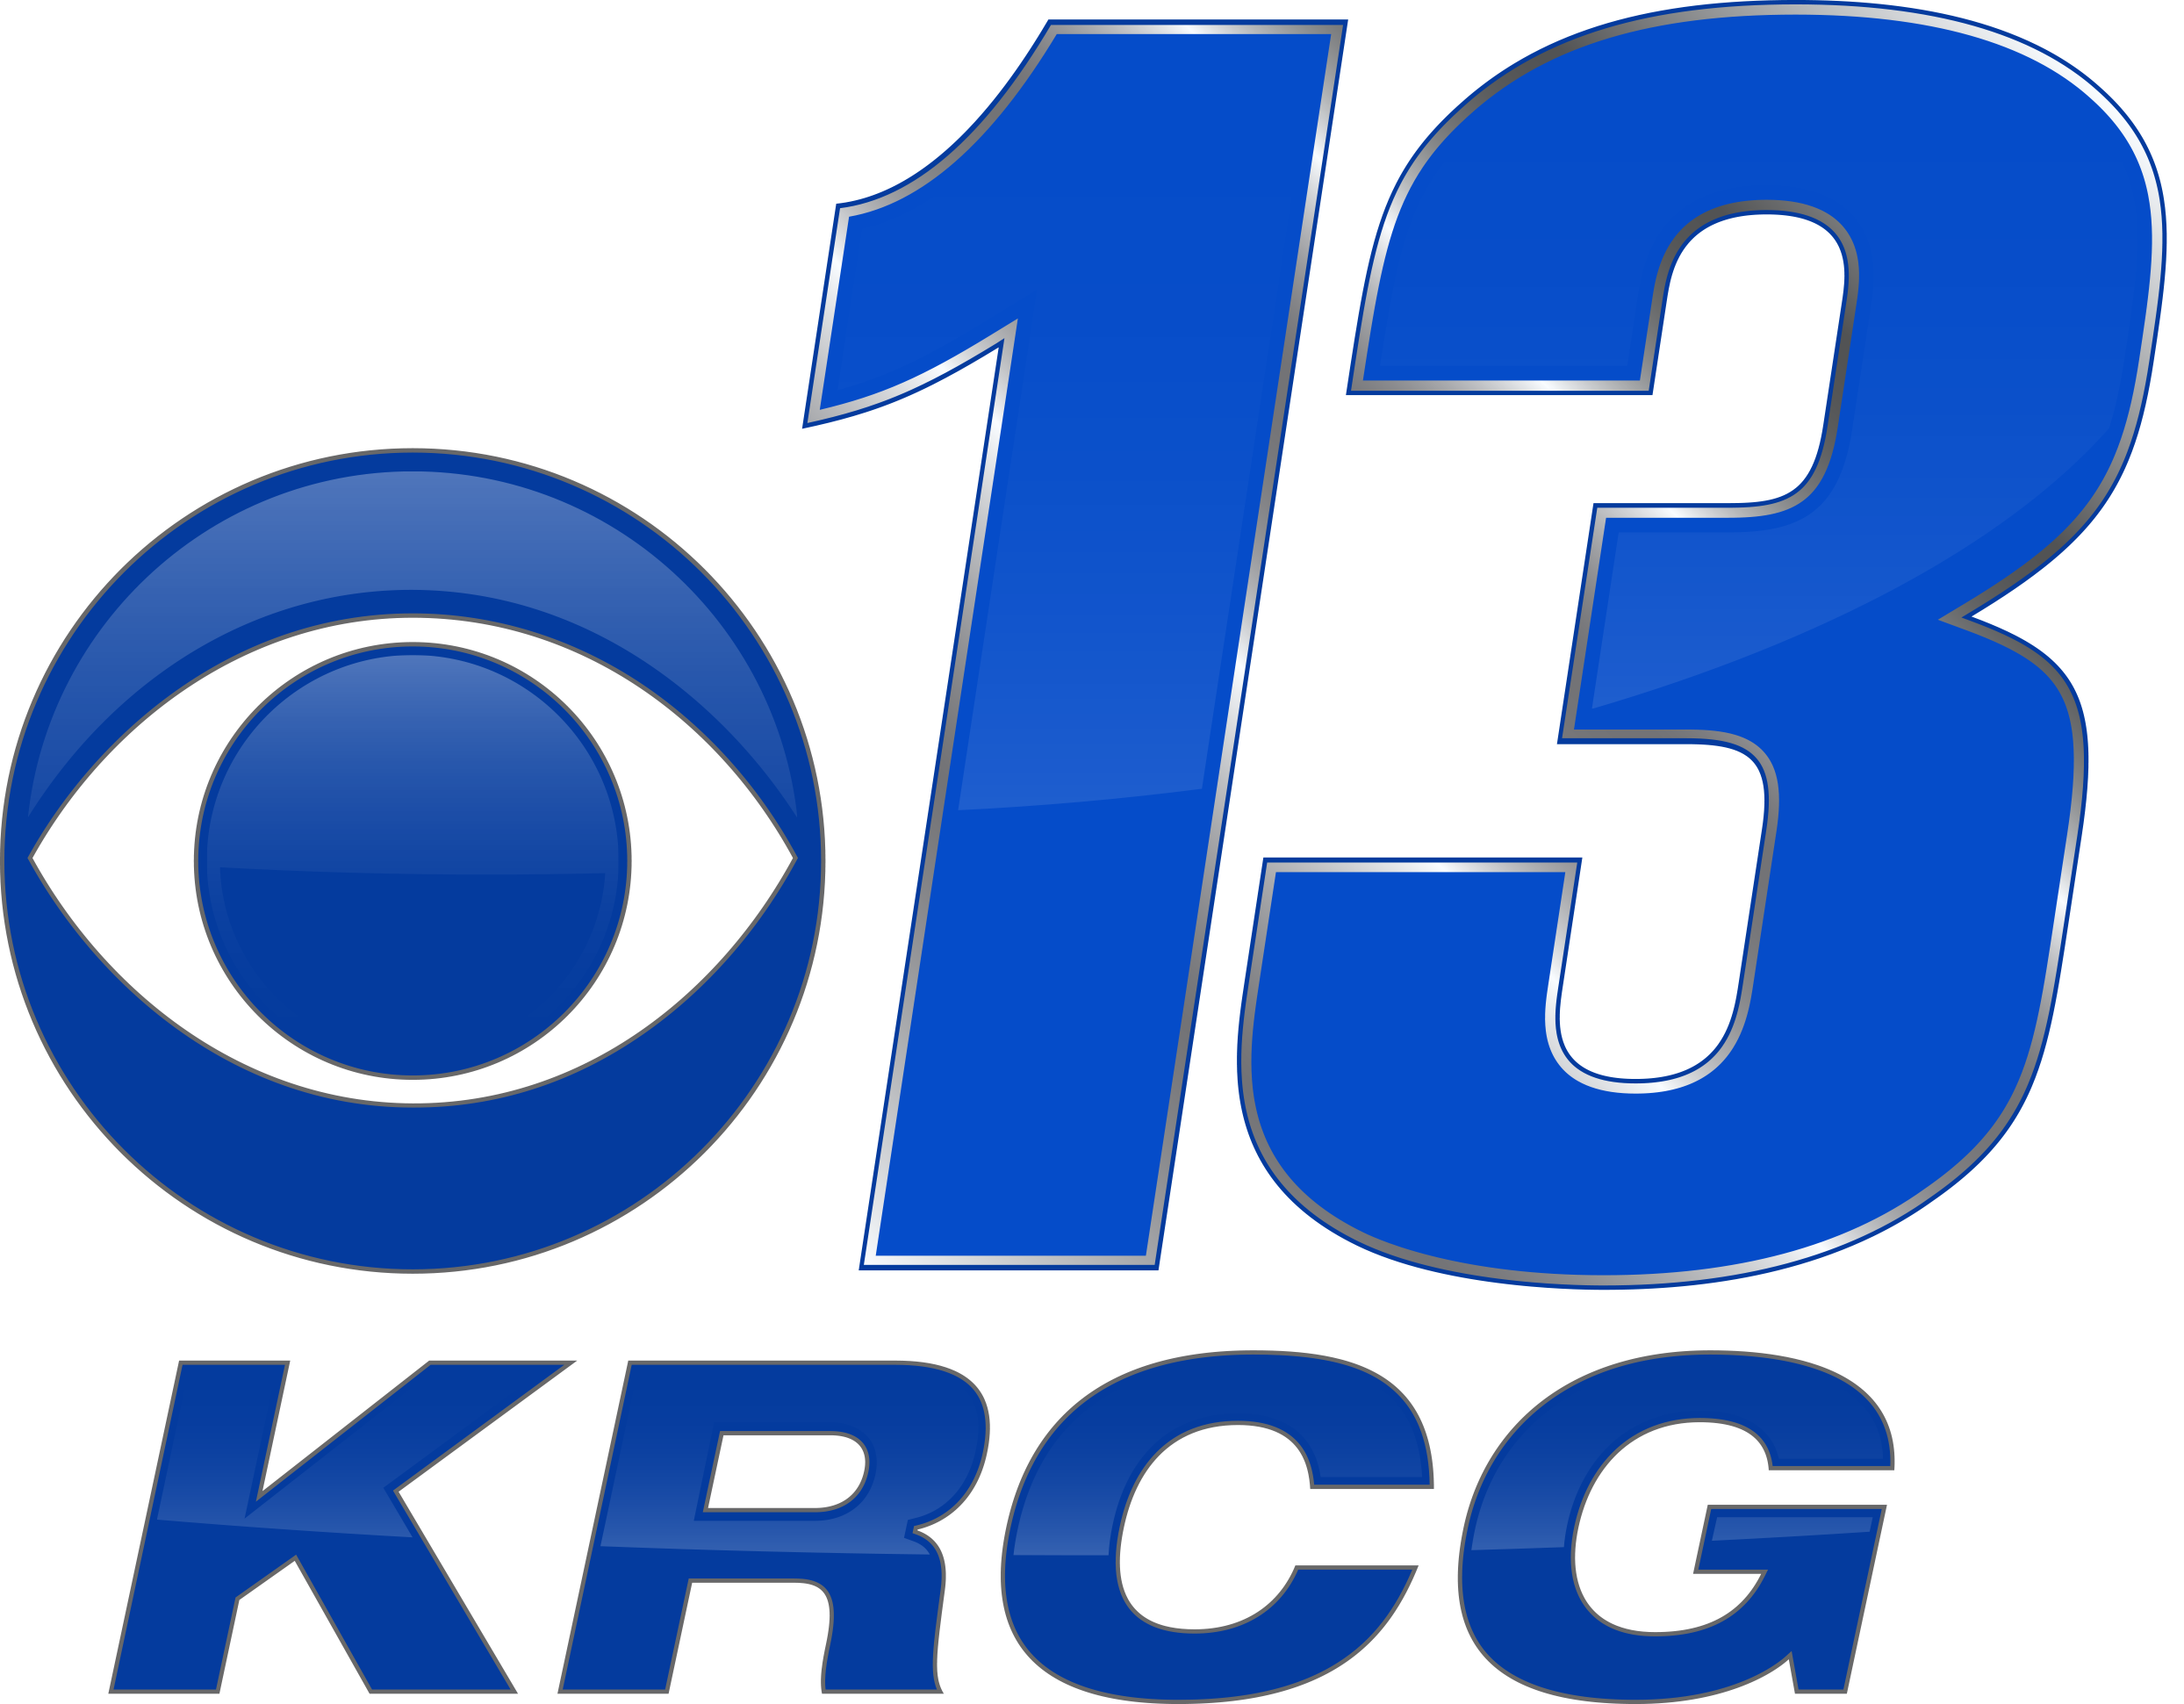 Logo: KRCG Channel 13